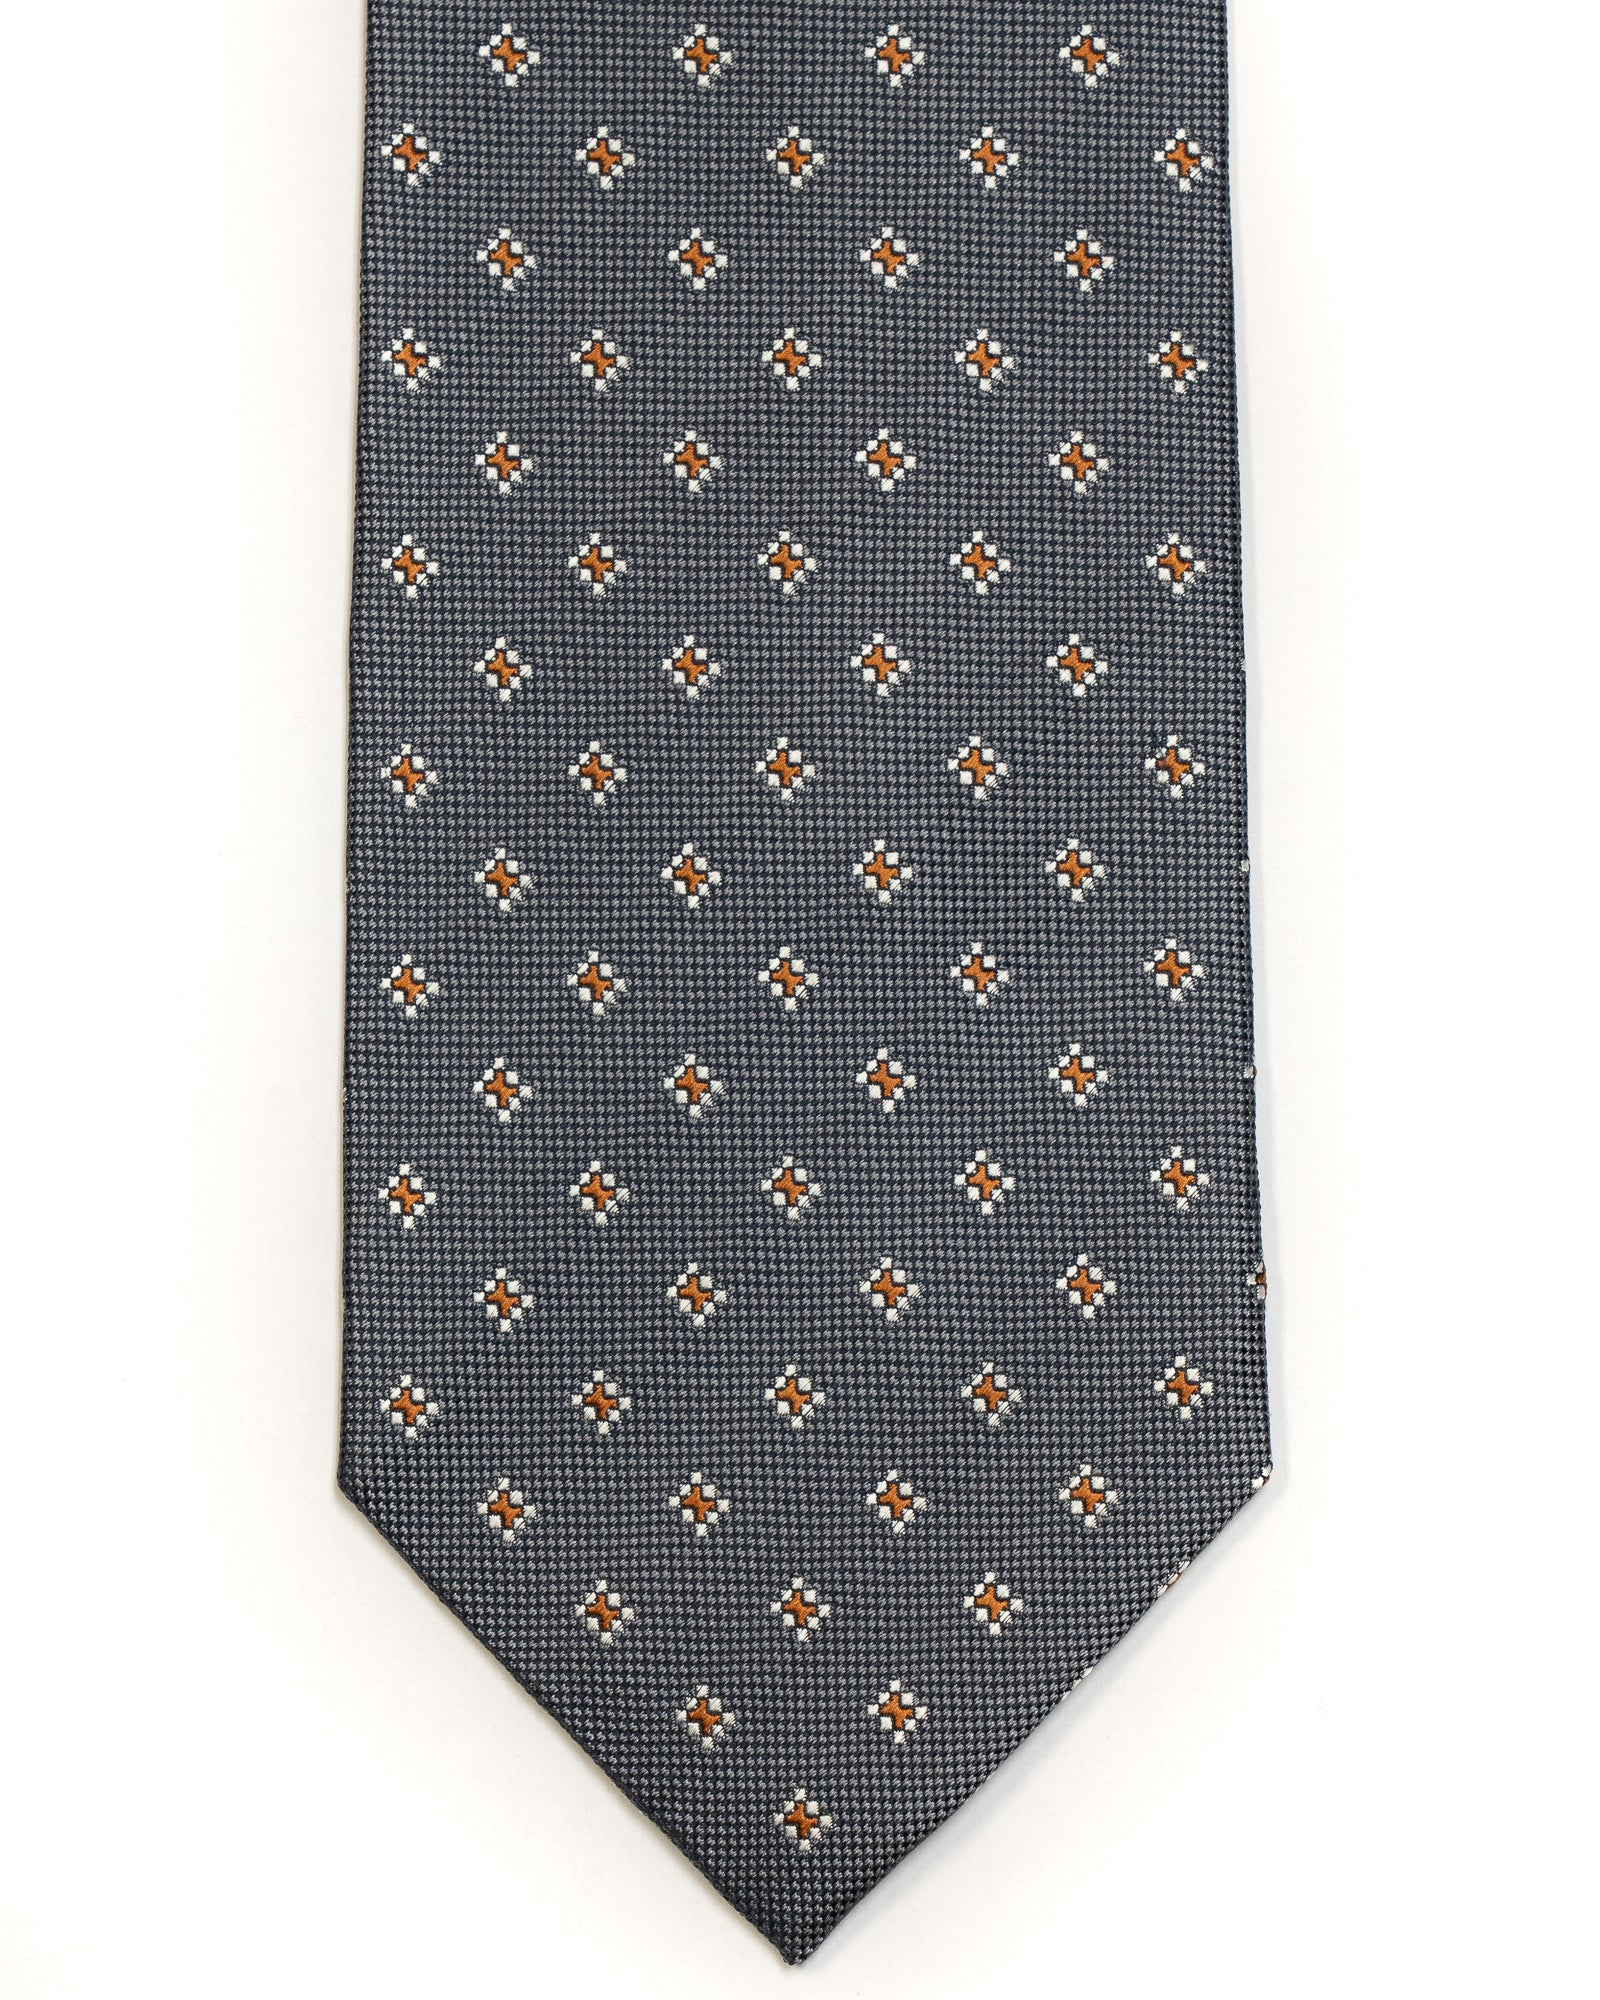 Silk Tie in Navy With White And Rust Foulard Print - Rainwater's Men's Clothing and Tuxedo Rental